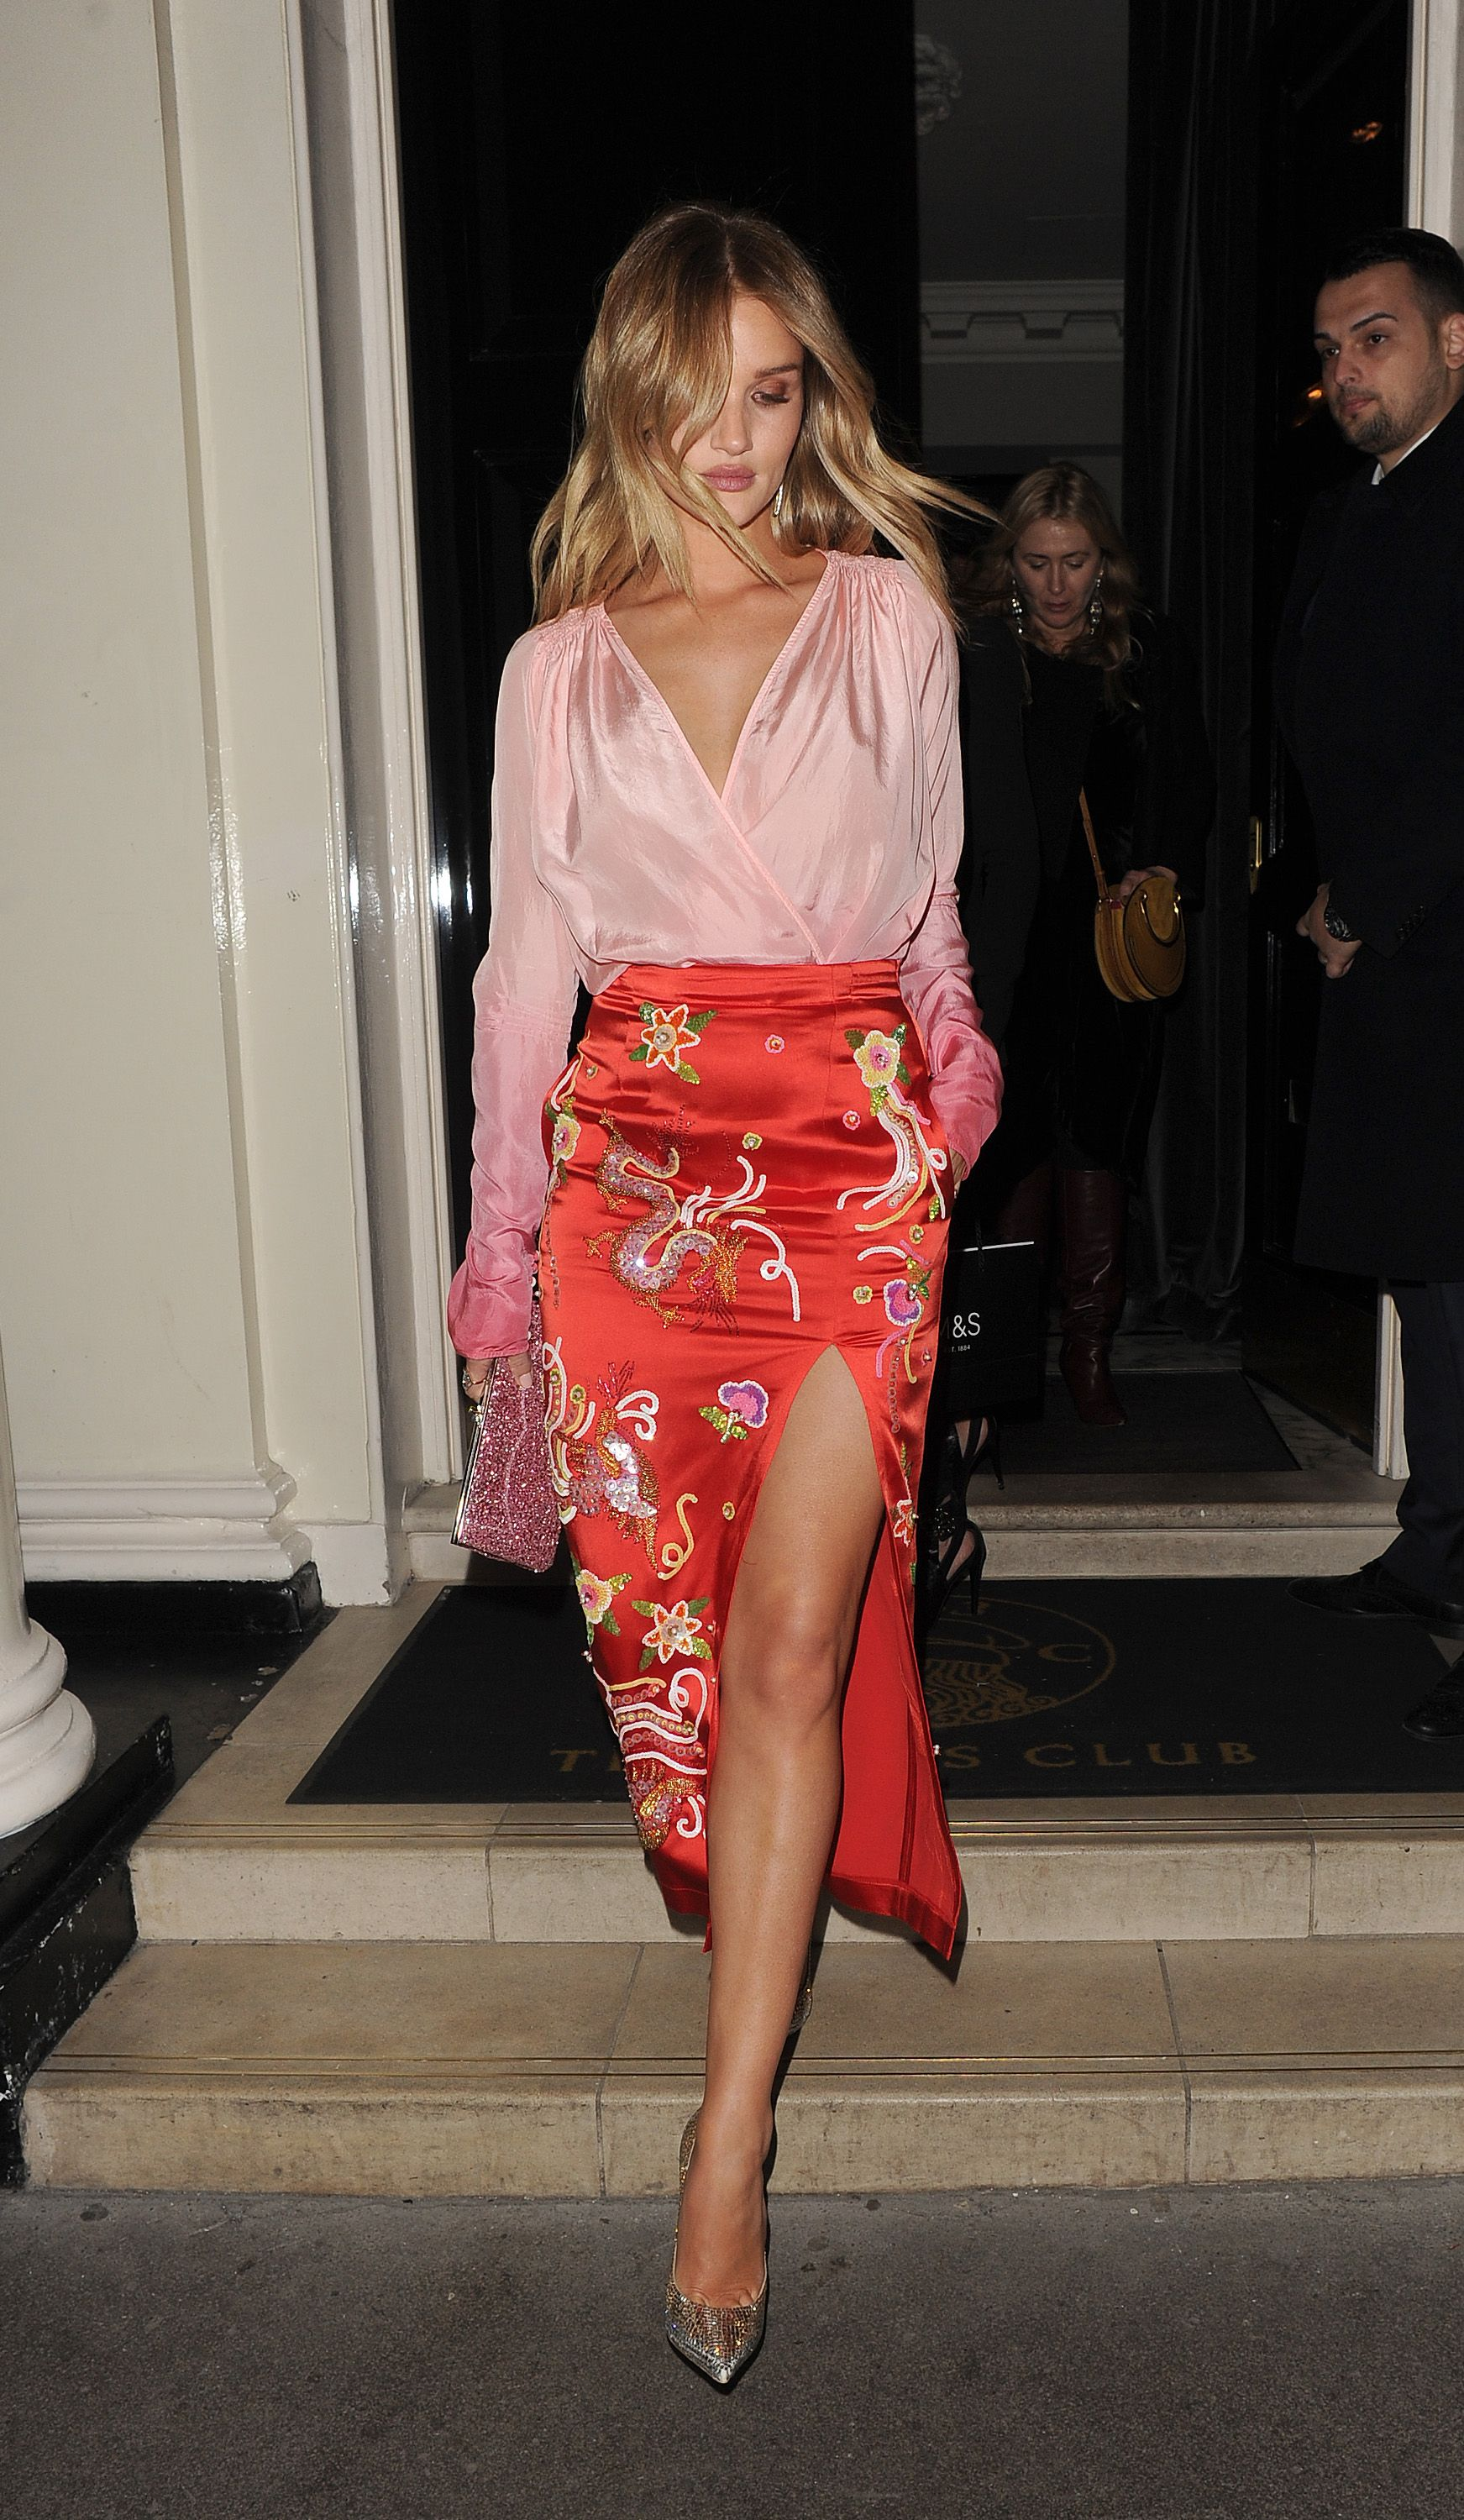 RHW steps out in a gorgeous skirt and pink satin shirt ☀️ Stylish outfit ideas for women who follow fashion from Zefinka.